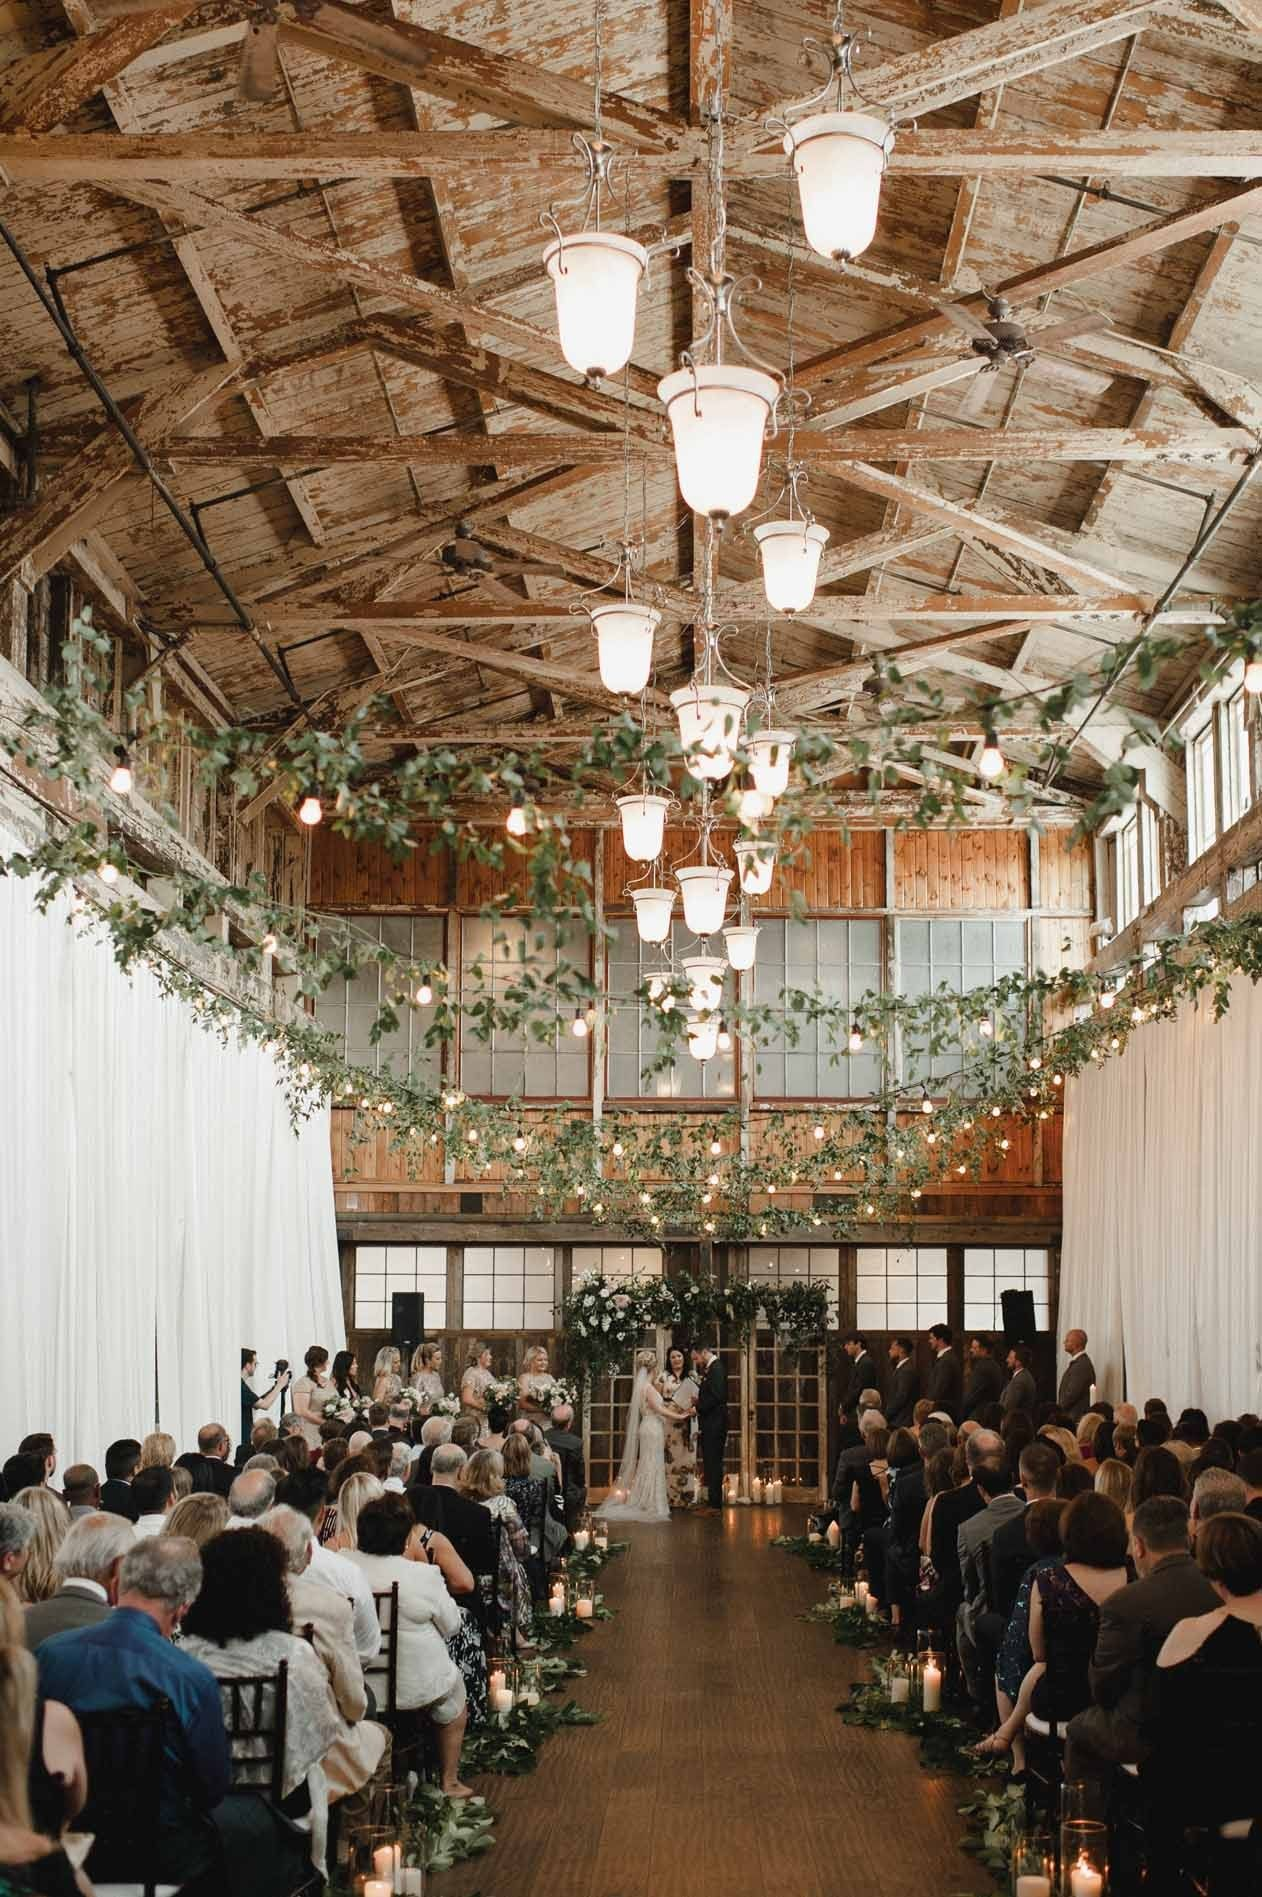 A Romantic Sodo Park Wedding In Seattle Flora Nova Design Premier Event Design Studio In Seattle In 2020 Sodo Park Wedding Romantic Backdrop Flora